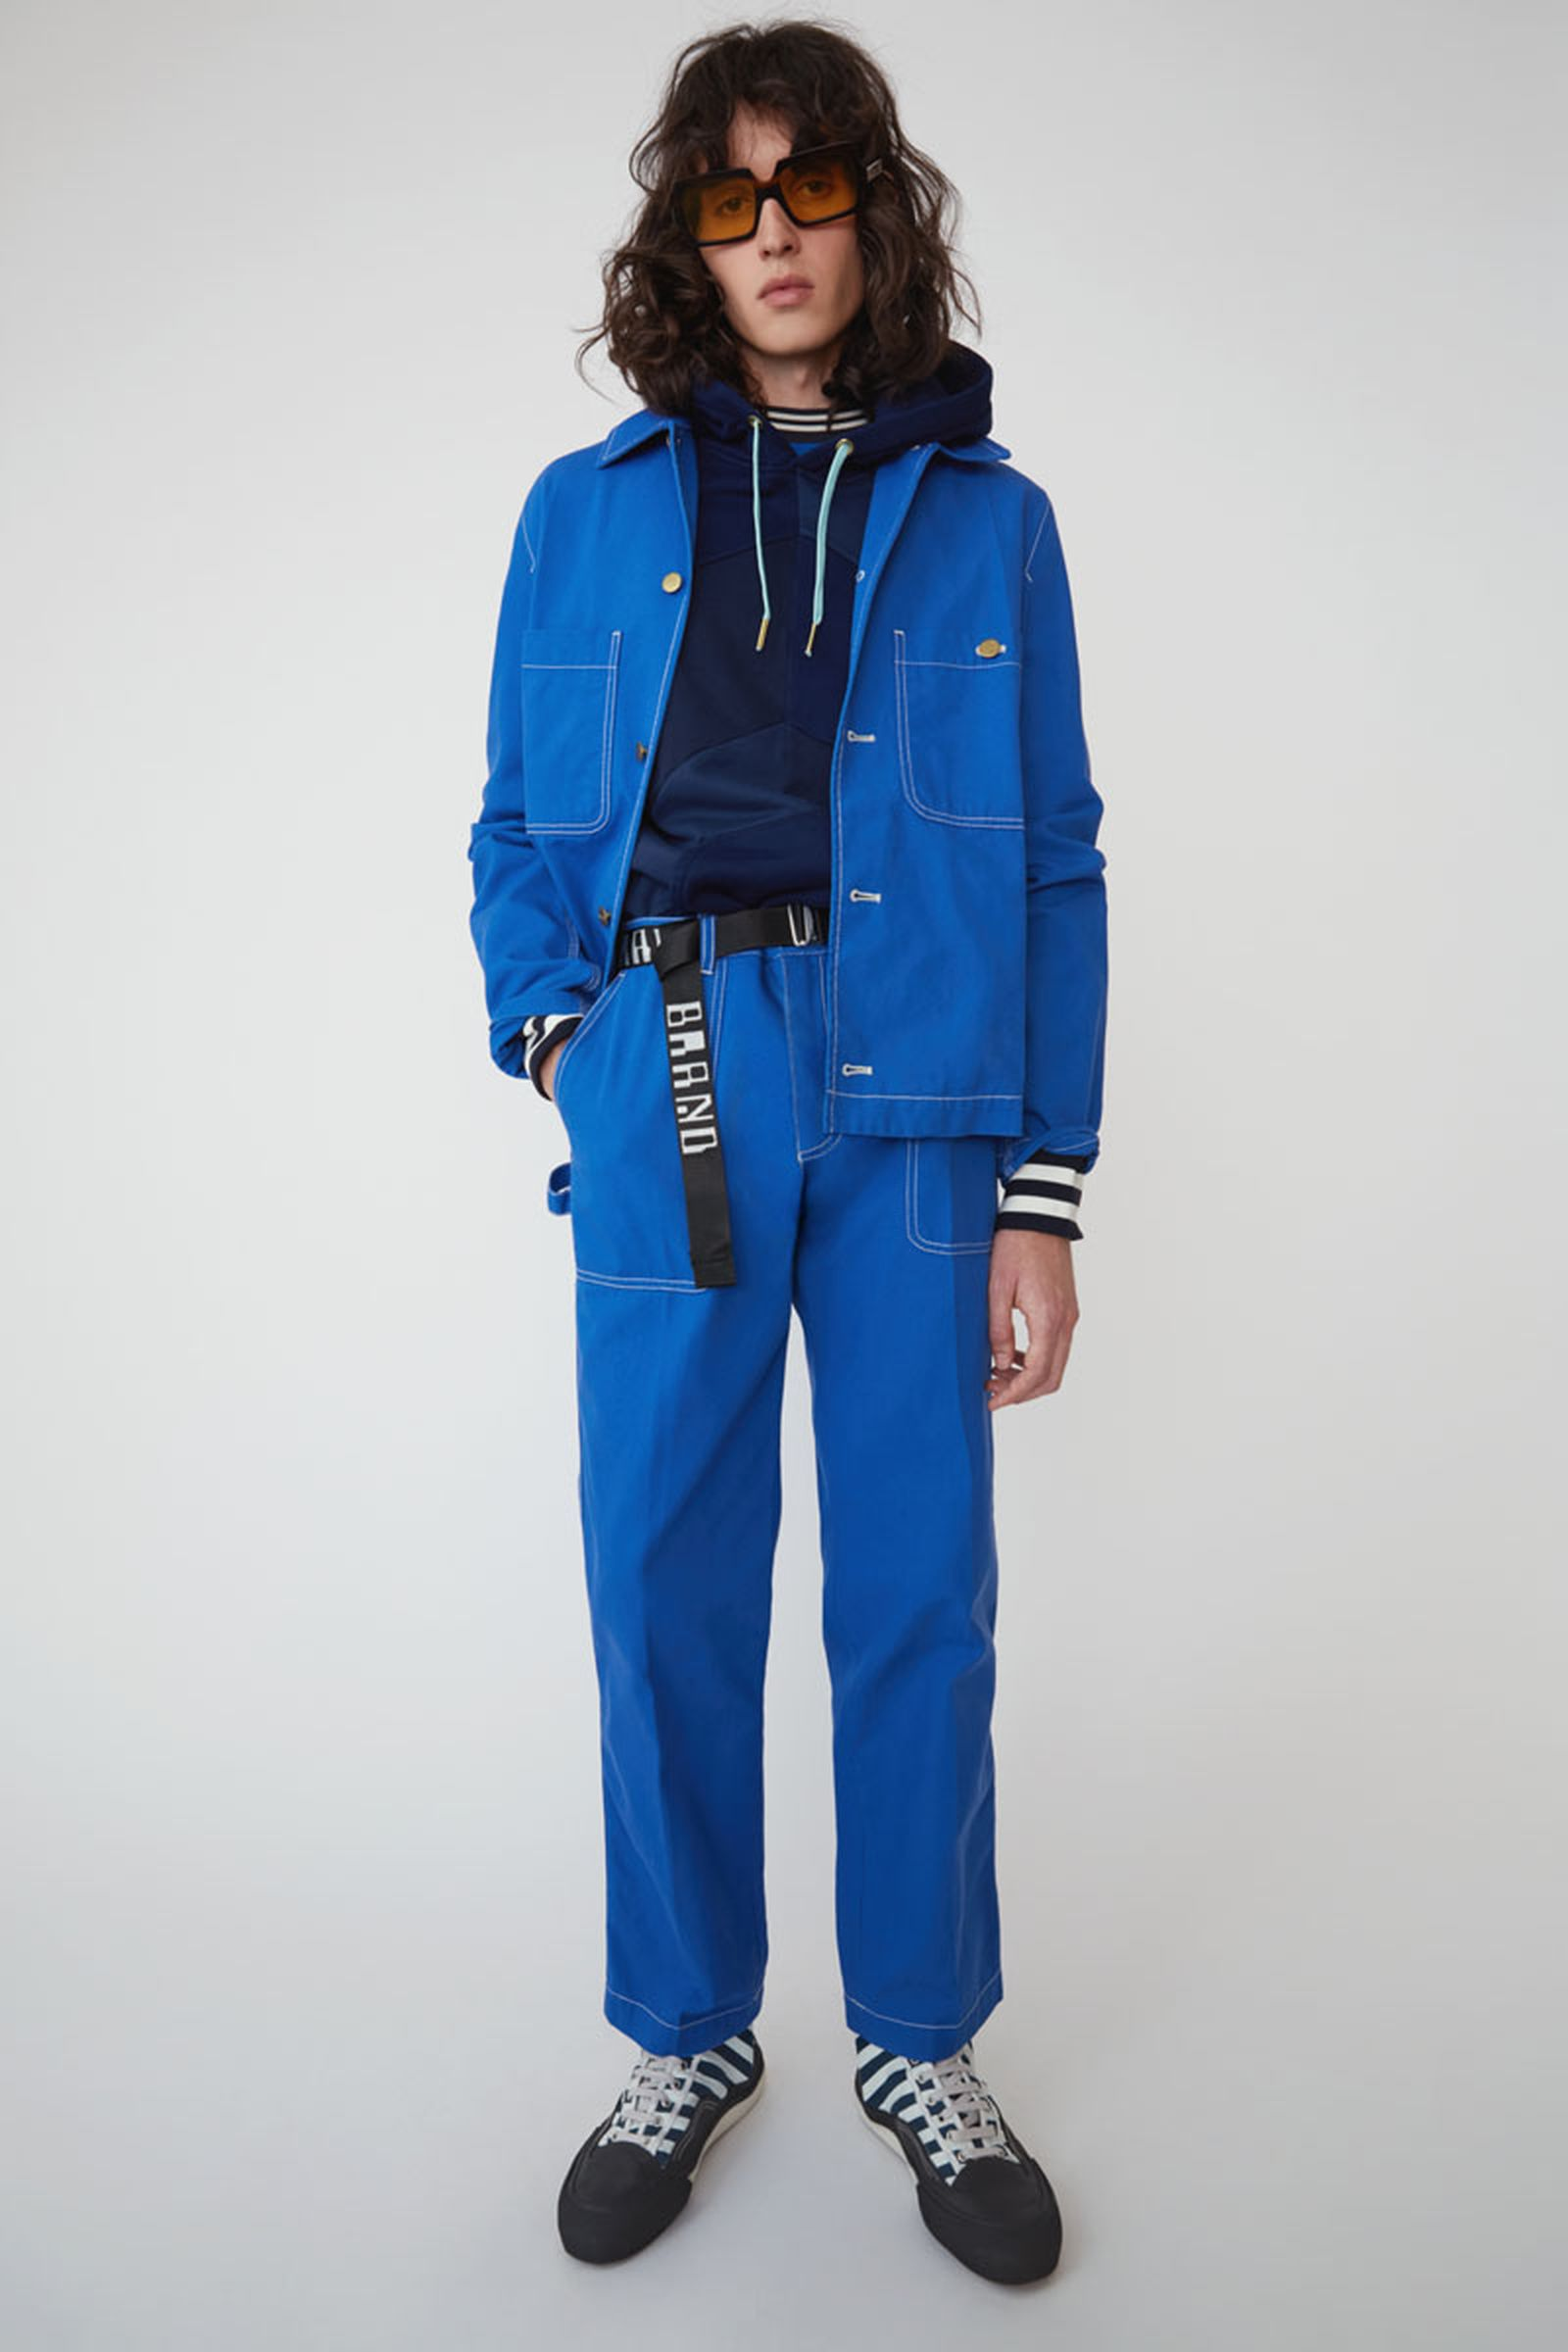 9acne studios ss19 denim collection